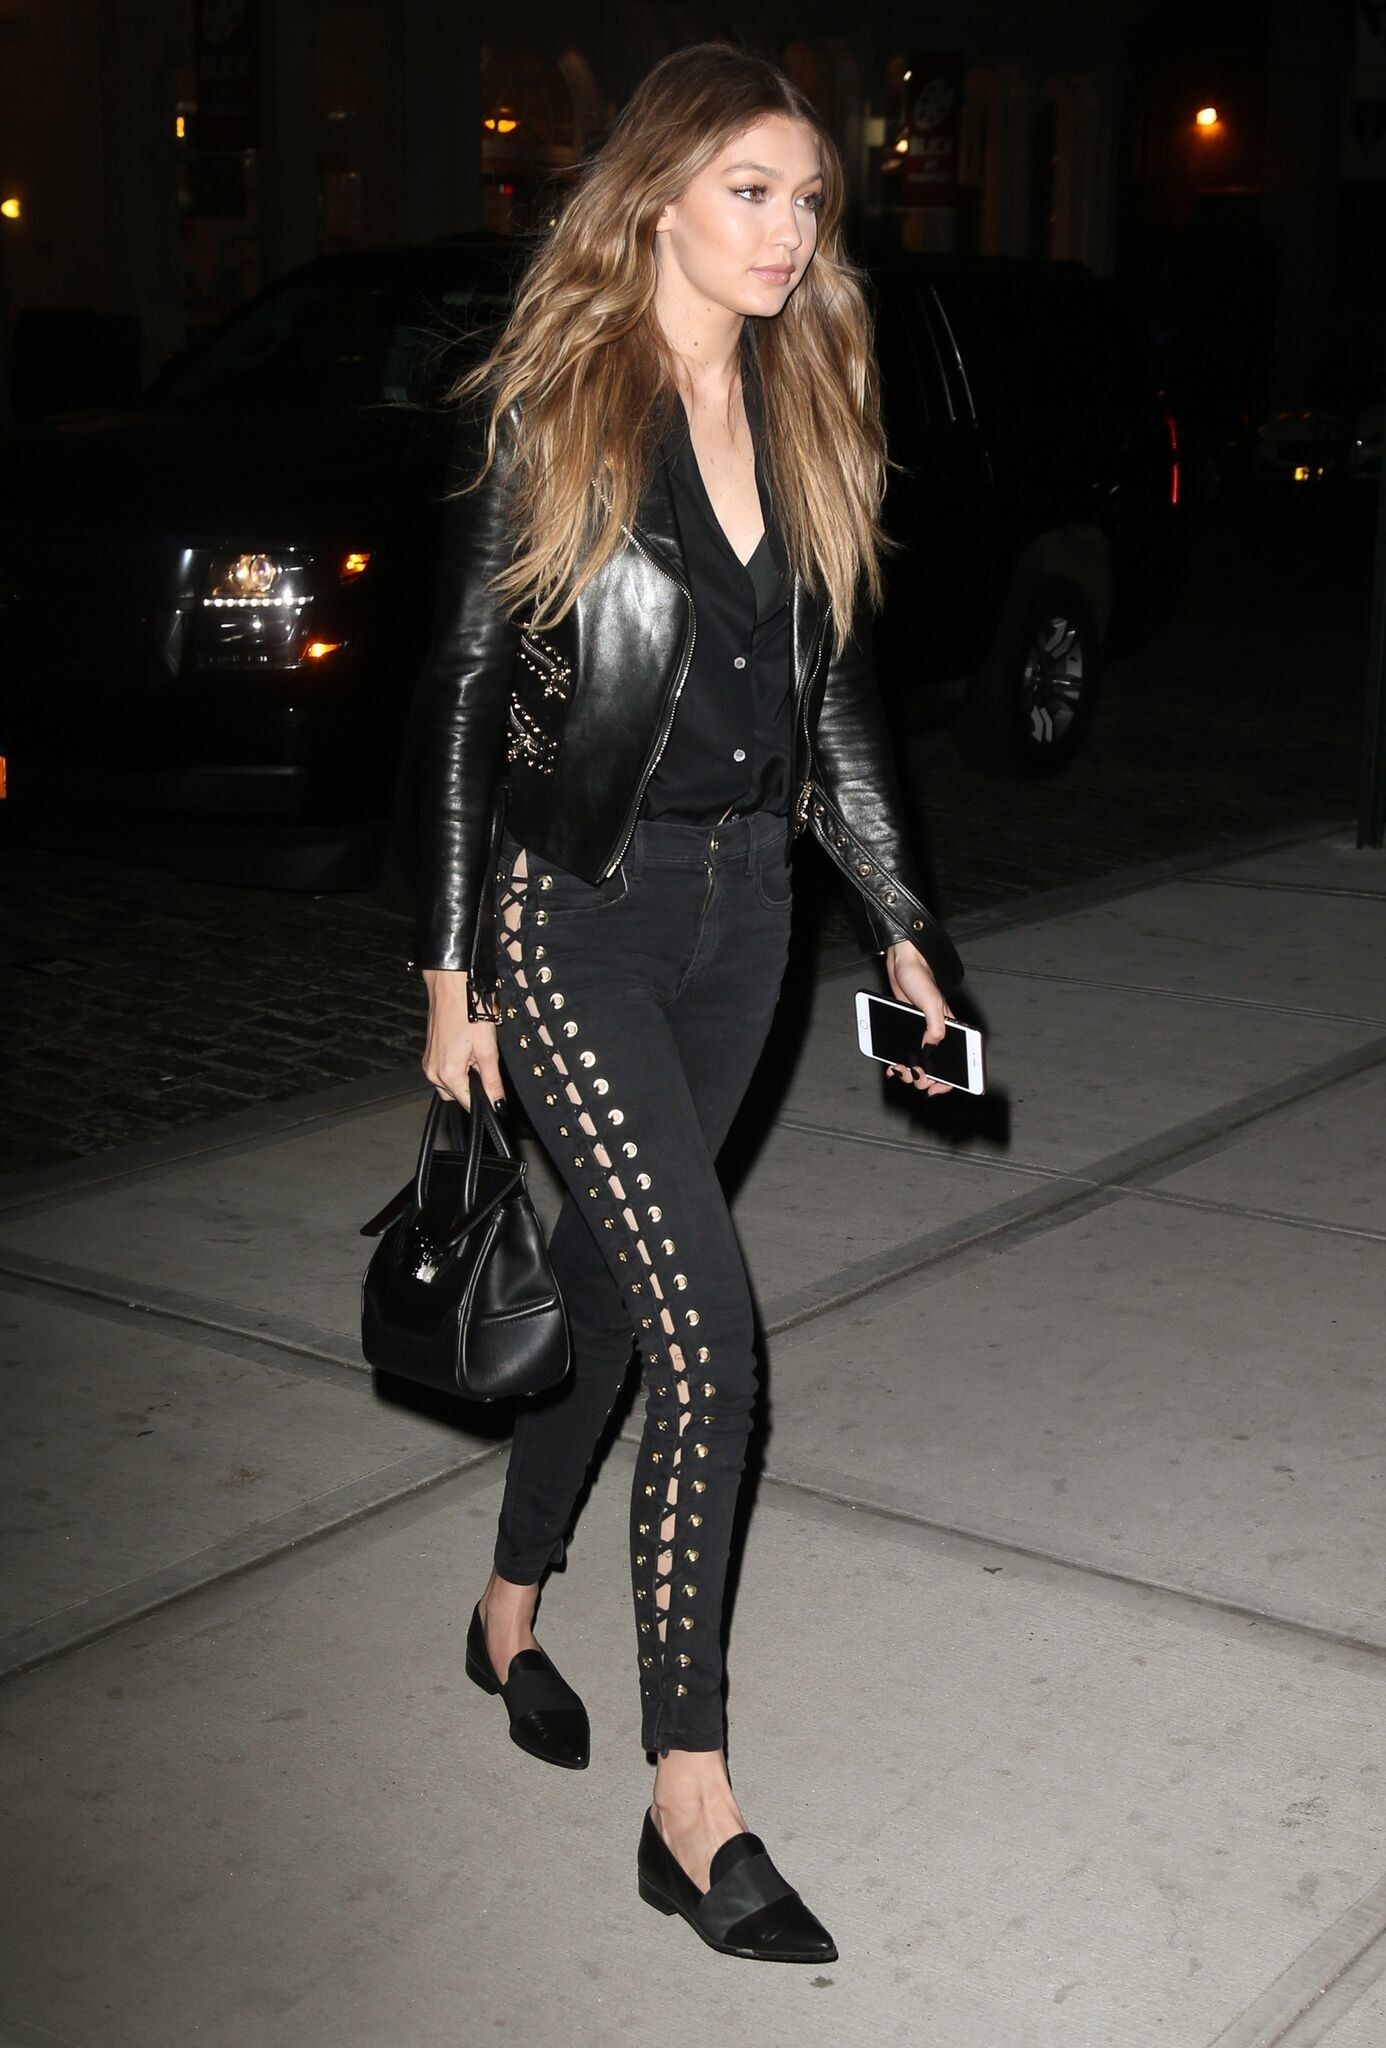 Gigi hadid in all black ensemble out in new york